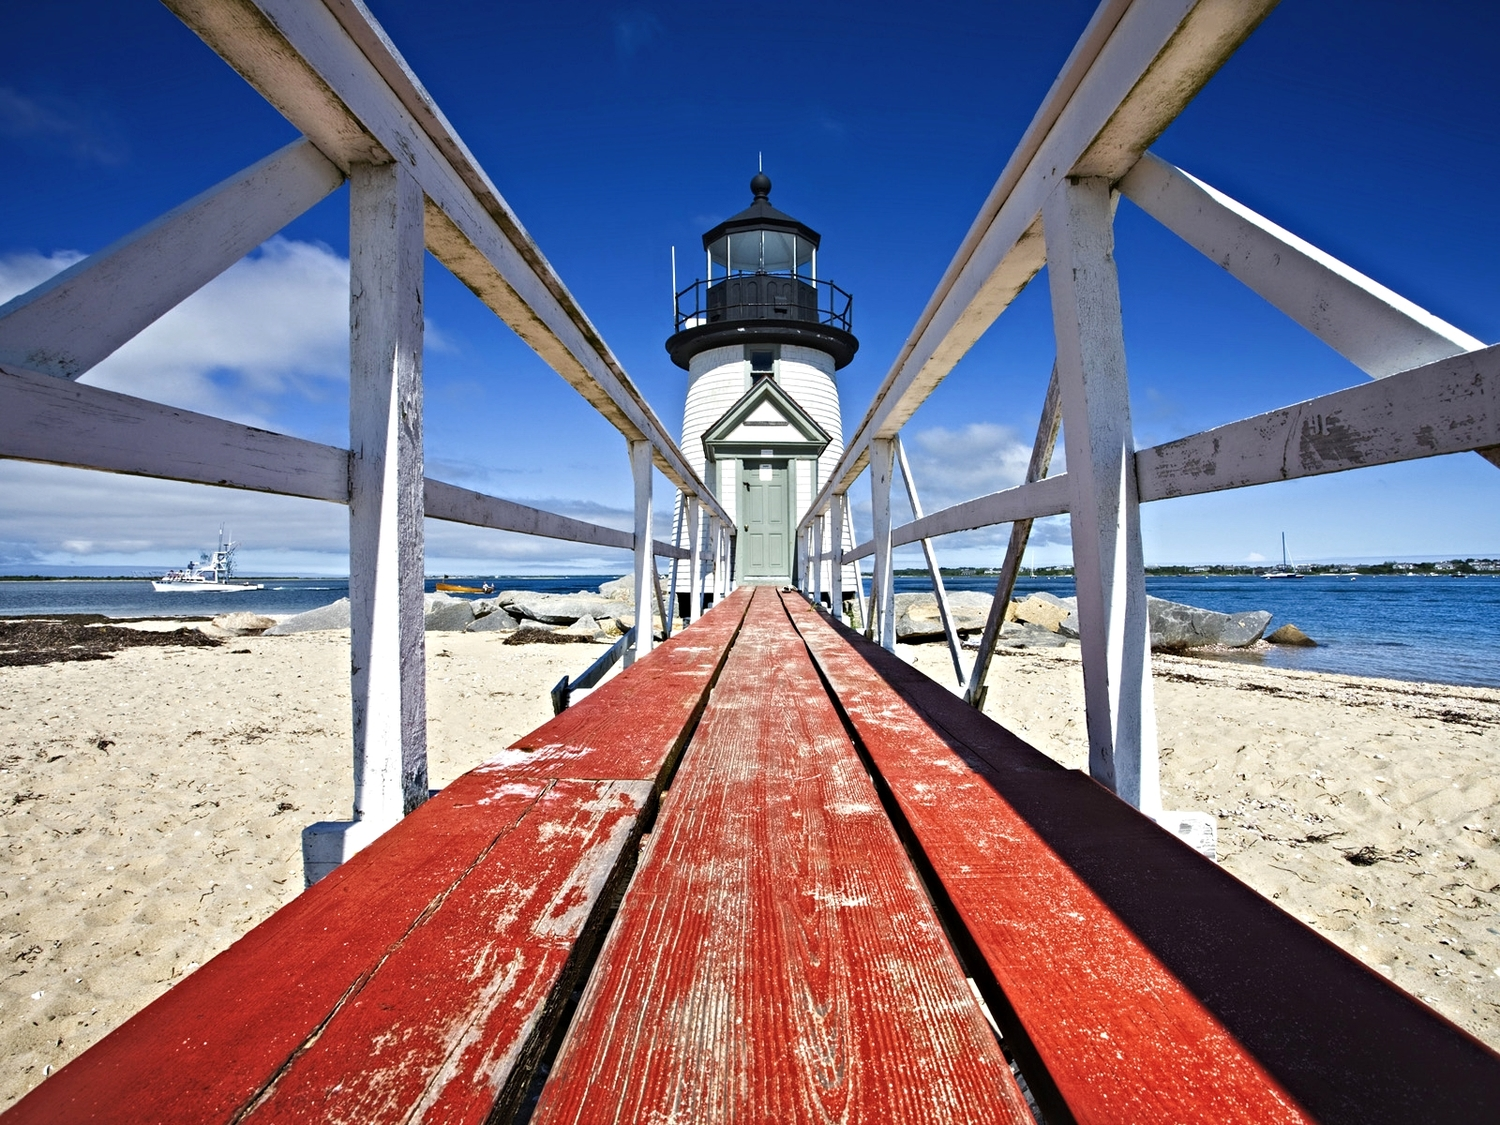 Hitting The Nantucket Pause Button